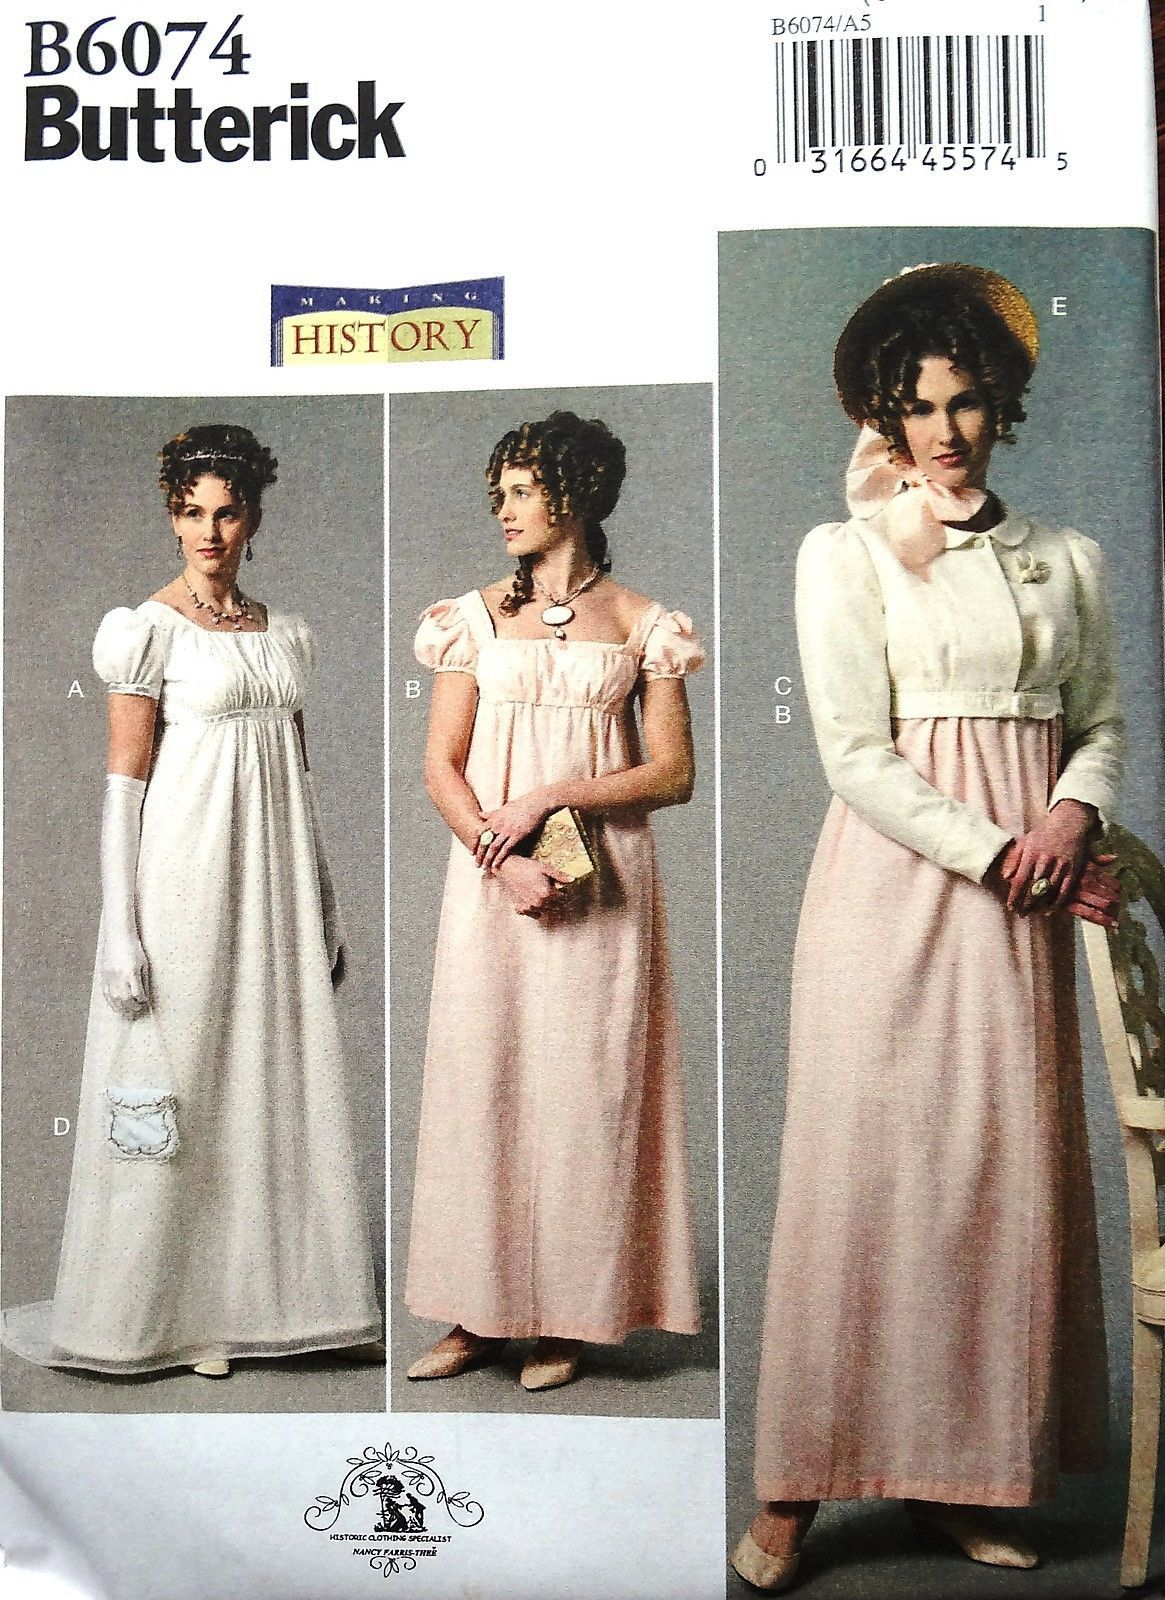 f3072f2708 BUTTERICK B6074 Regency Dress Jacket Hat Jane Austen Style Costume Pattern 6-22  in Crafts